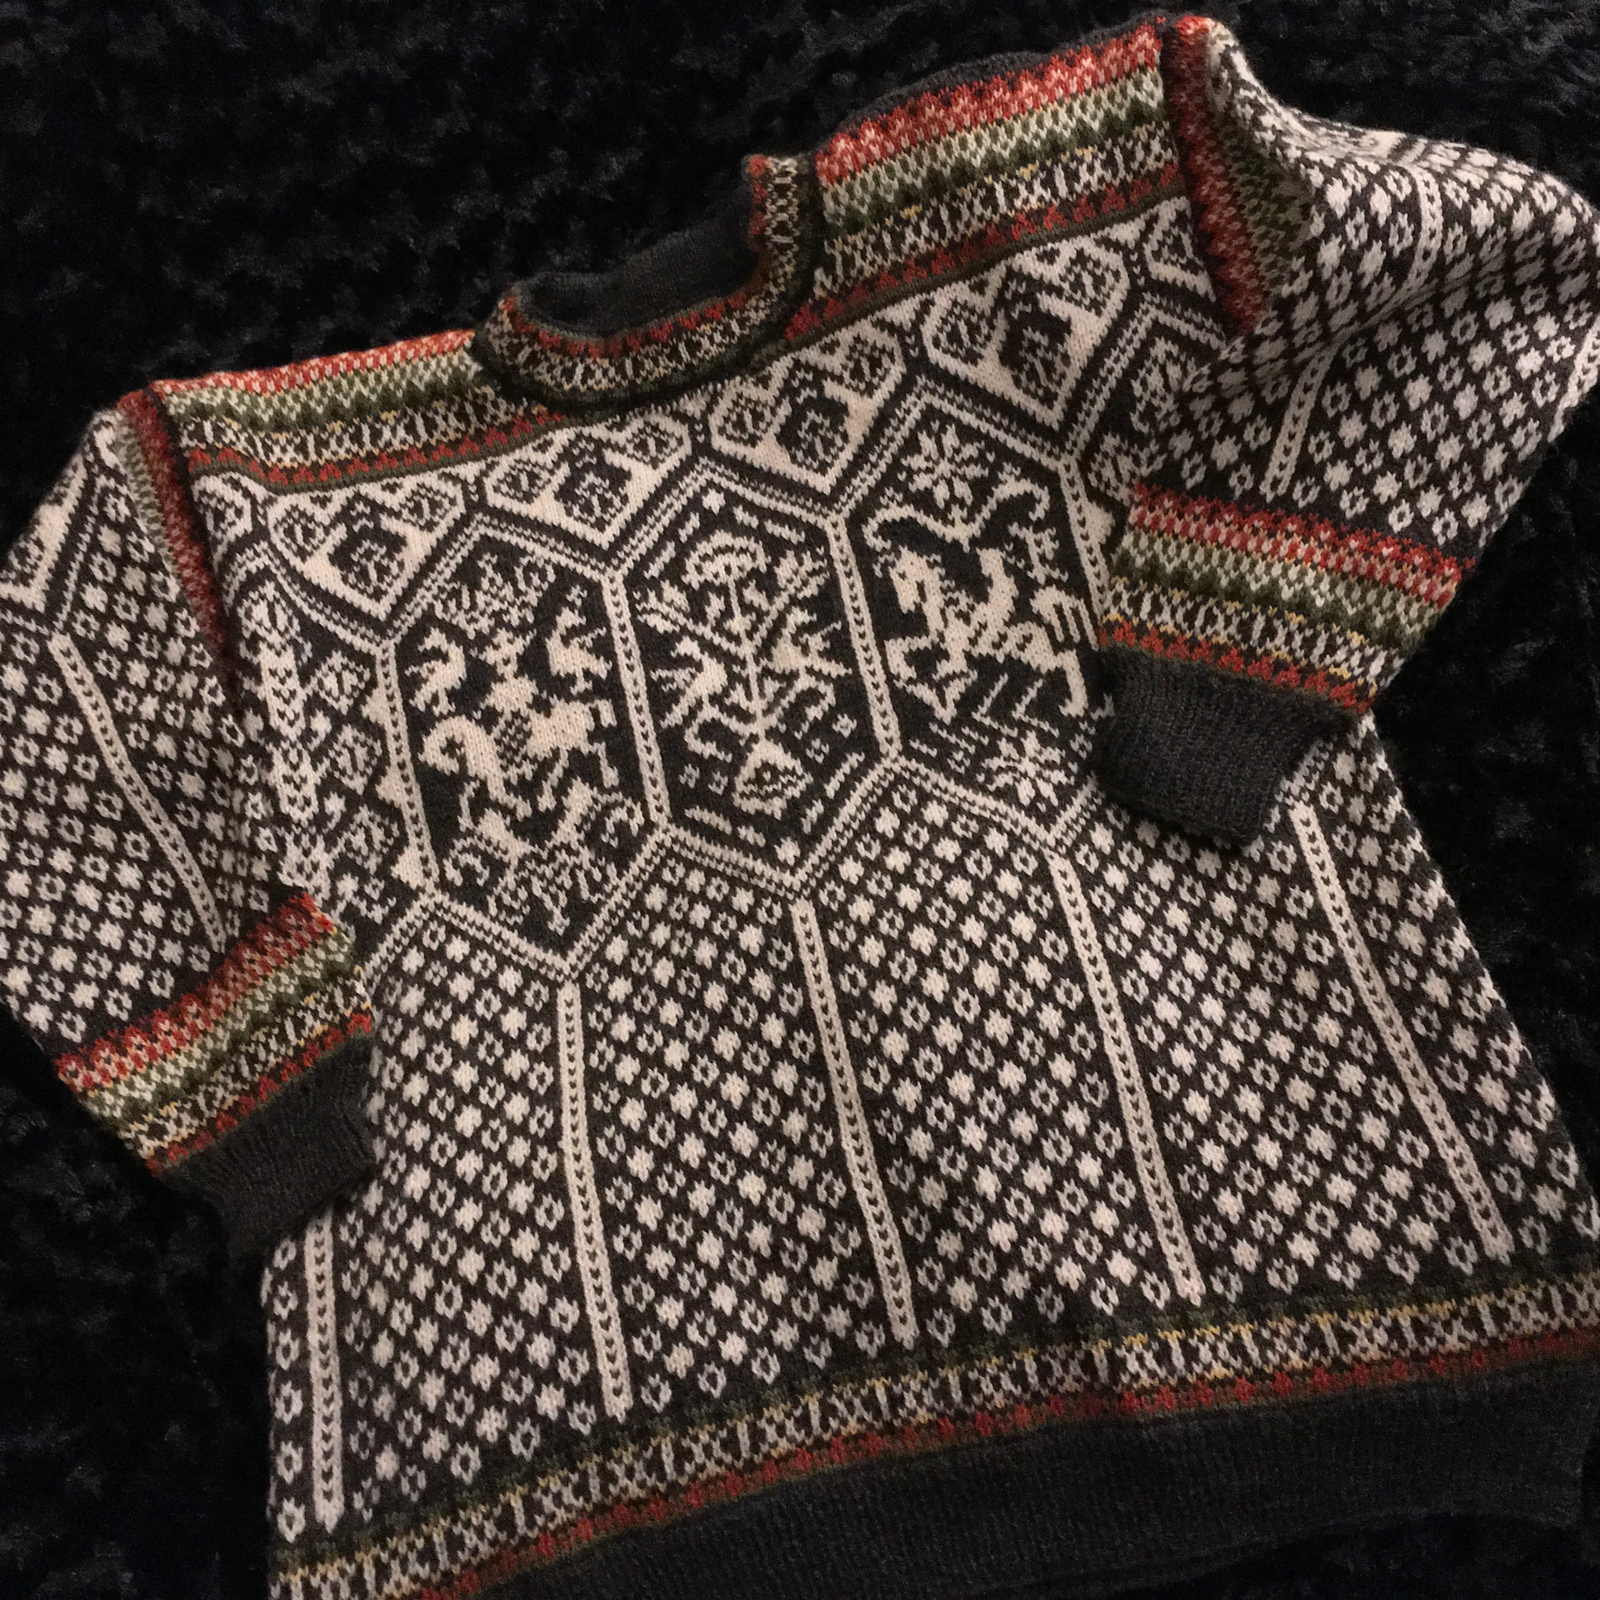 A mostly black and white Norwegian-style knit sweater, with vertical panels of diamonds, topped by pictures of horse and rider and thistles.  The cuffs, shoulders, and collar have bands of color.